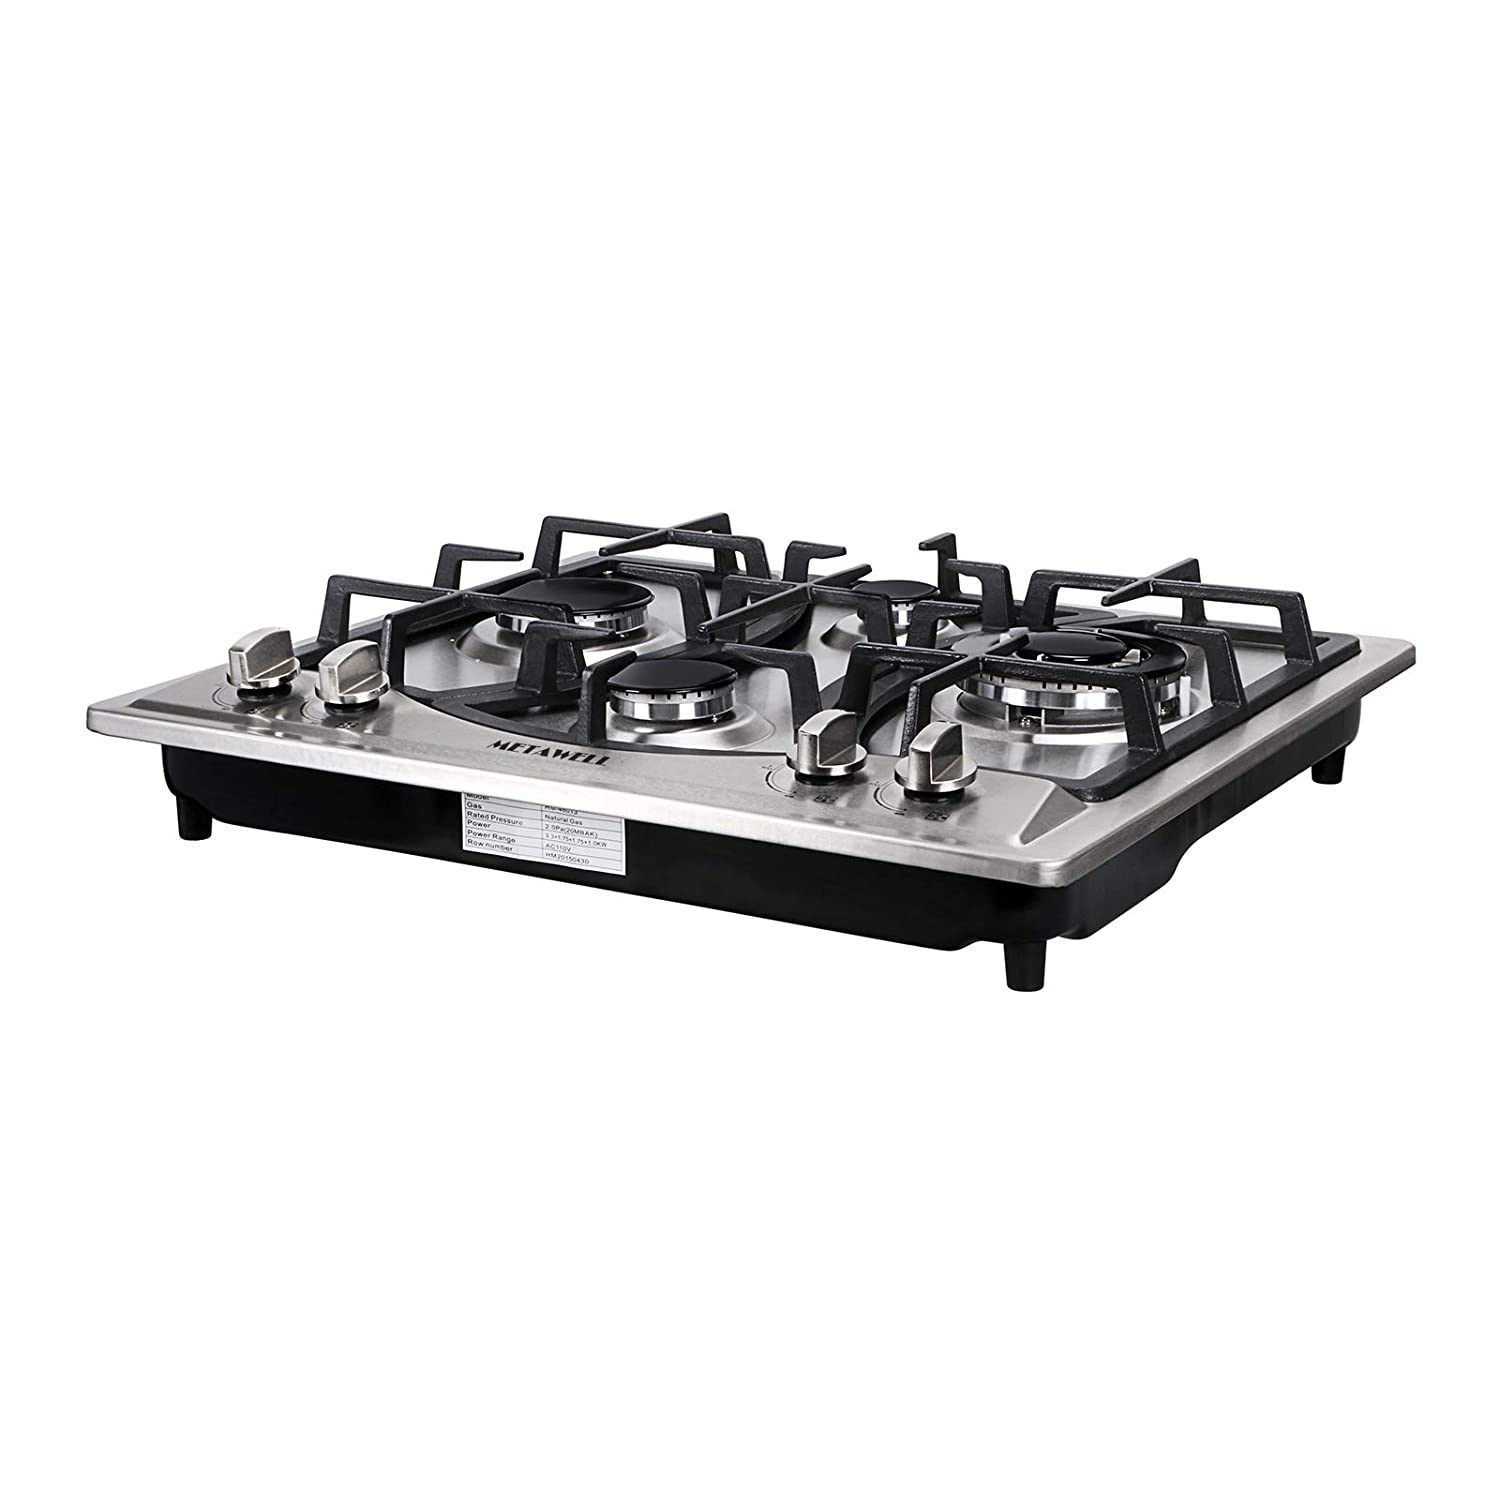 METAWELL 23 Curve Stainless Steel 4 Burner Stove NG//LPG Hob Cooktops Cooker US Seller, Ship from CA,US